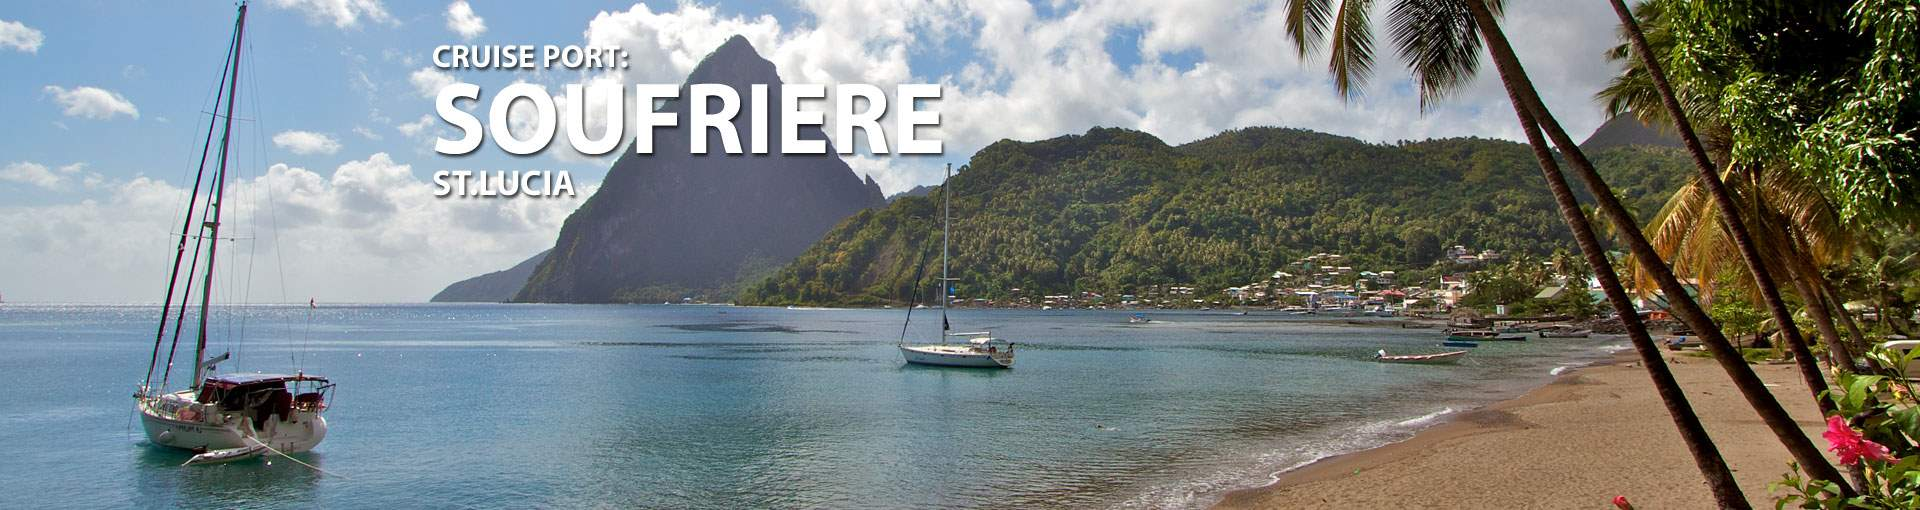 Cruises to Soufriere, St. Lucia